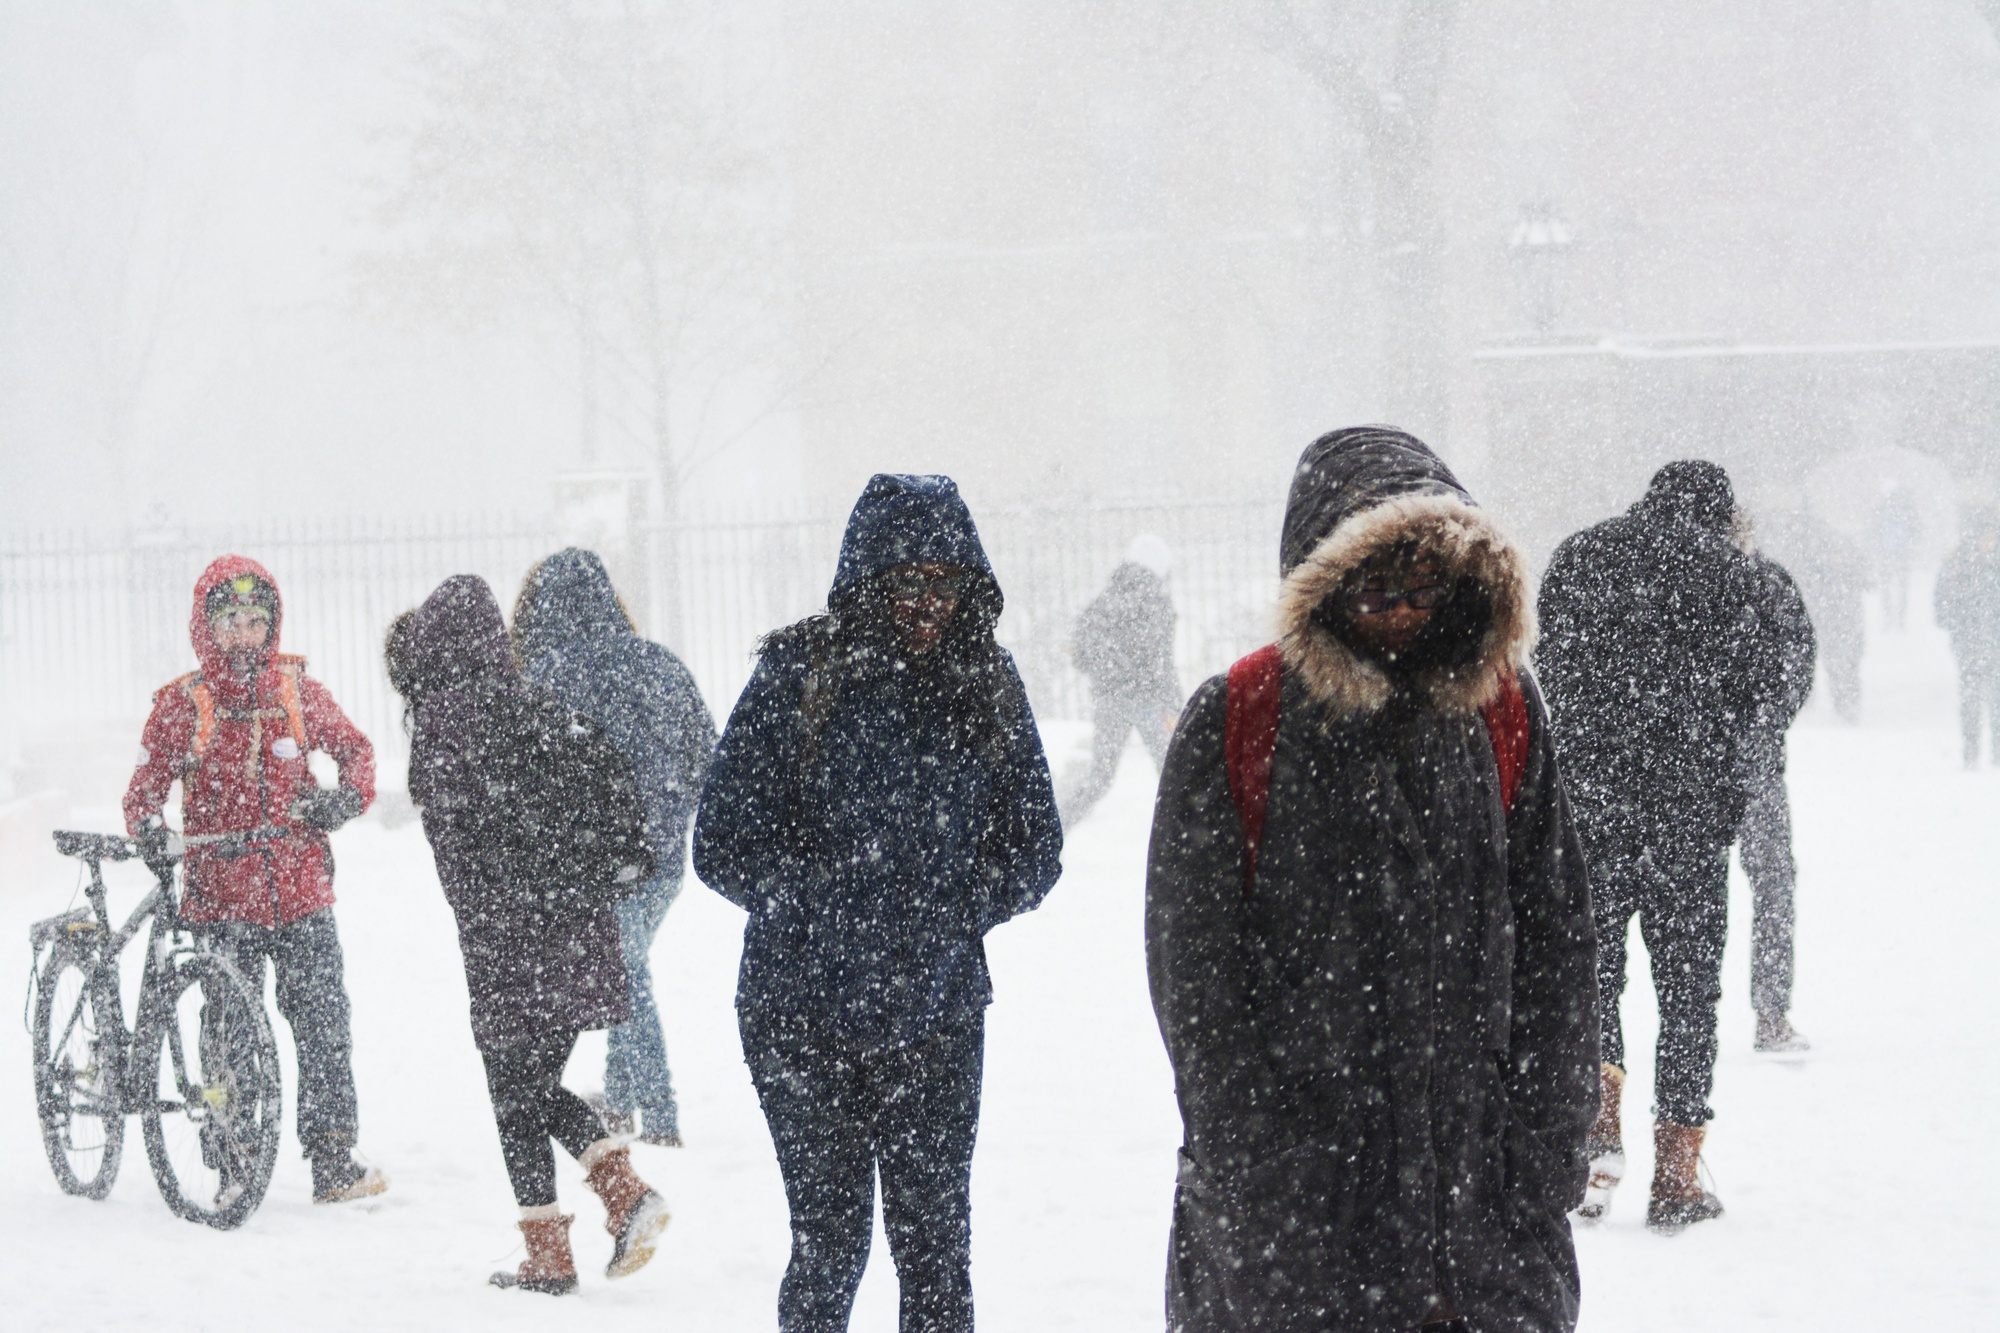 Despite freezing temperatures, gusty winds, and more than a foot of snow, students bundled up and headed to class on Thursday.